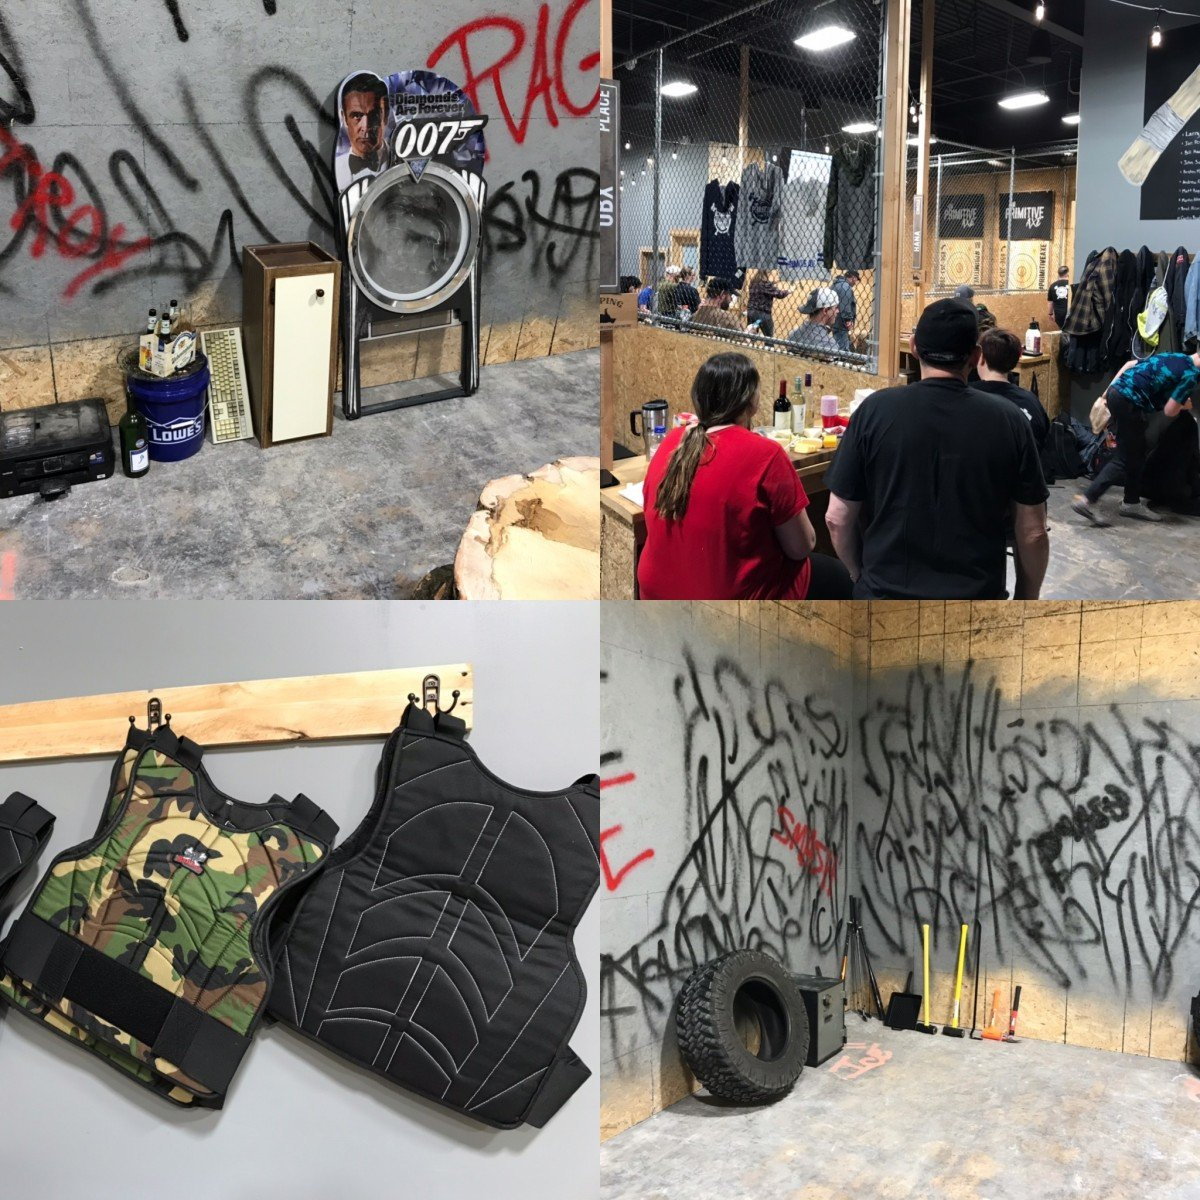 Primitive Rage Room Opens at Primitive Axe Glassboro.  You Get to SMASH THINGS!